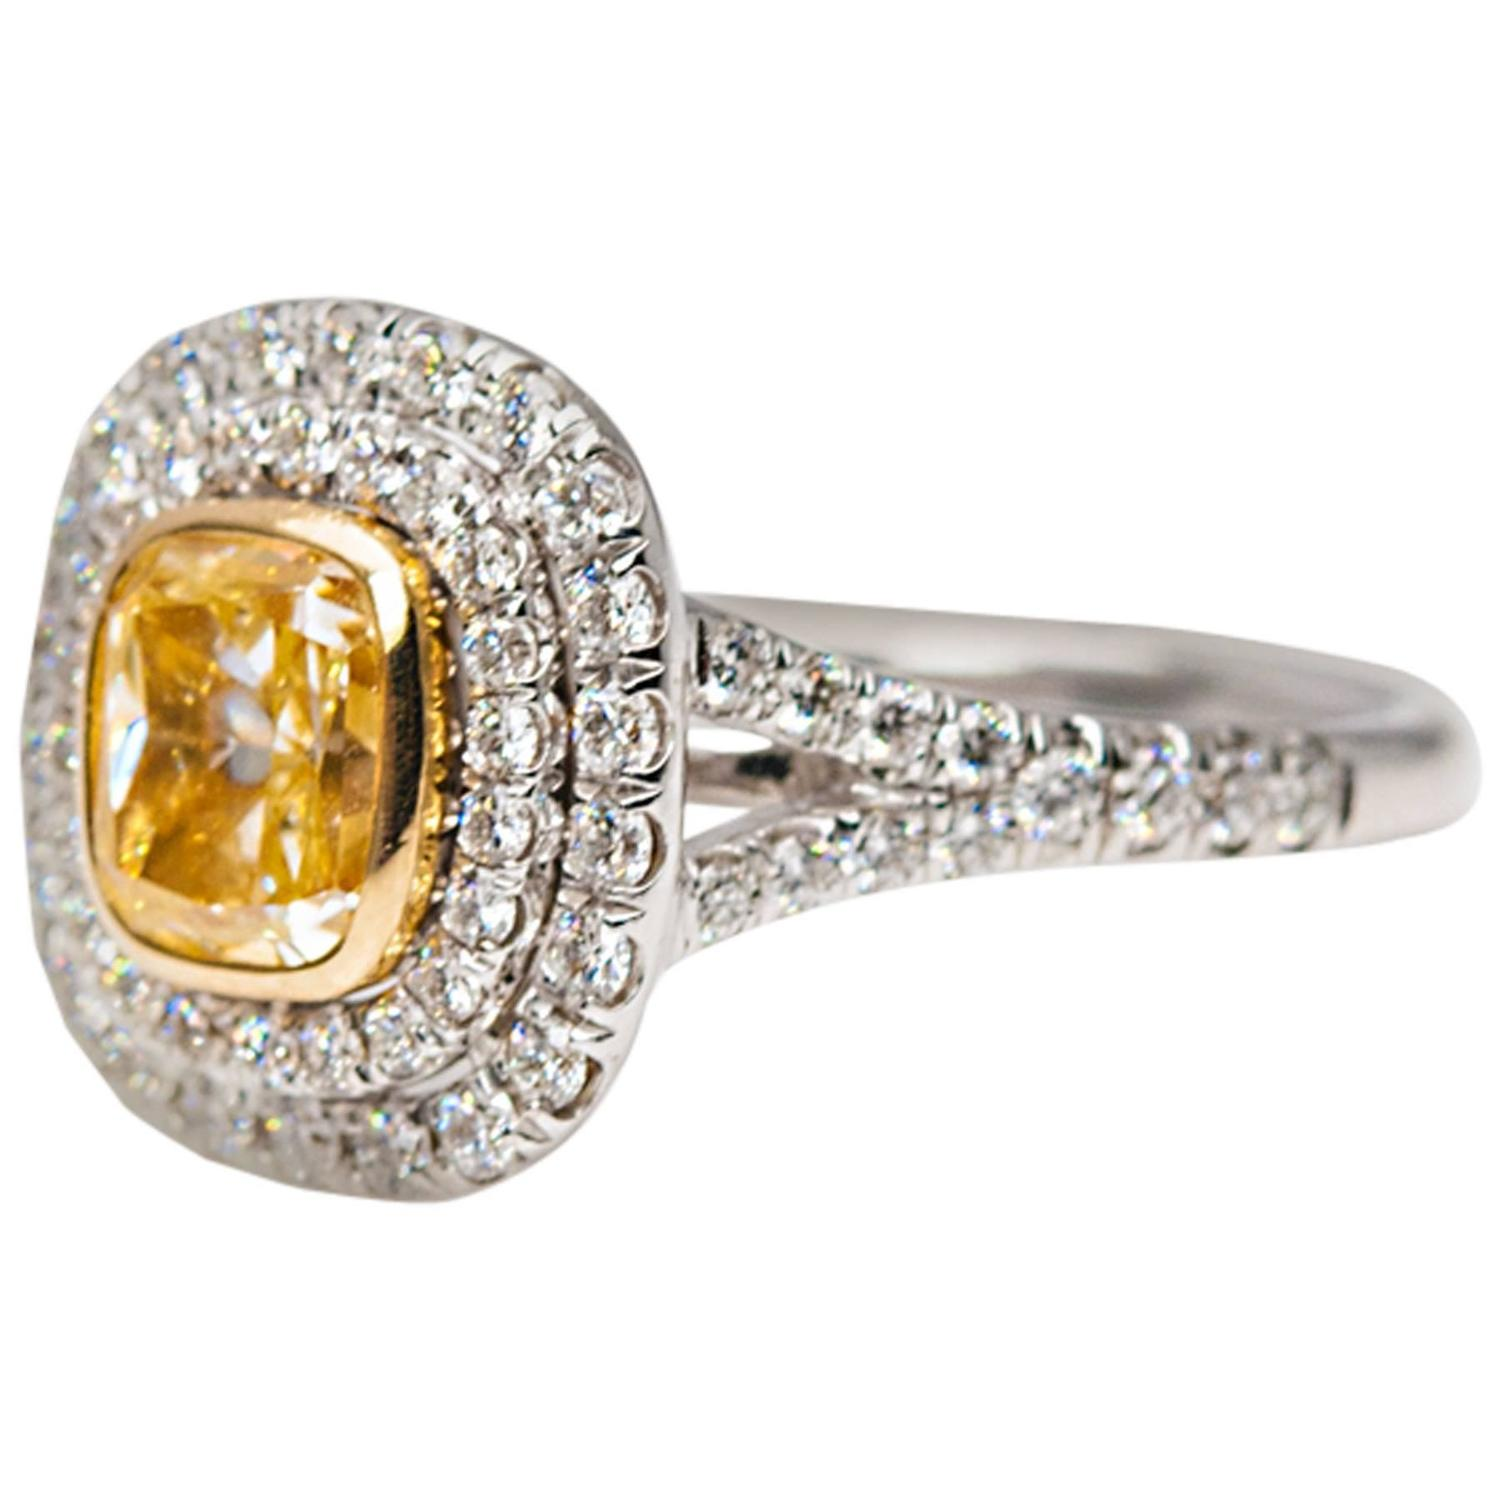 Fancy Yellow Diamond Two Color Gold Engagement Ring For Sale at 1stdibs